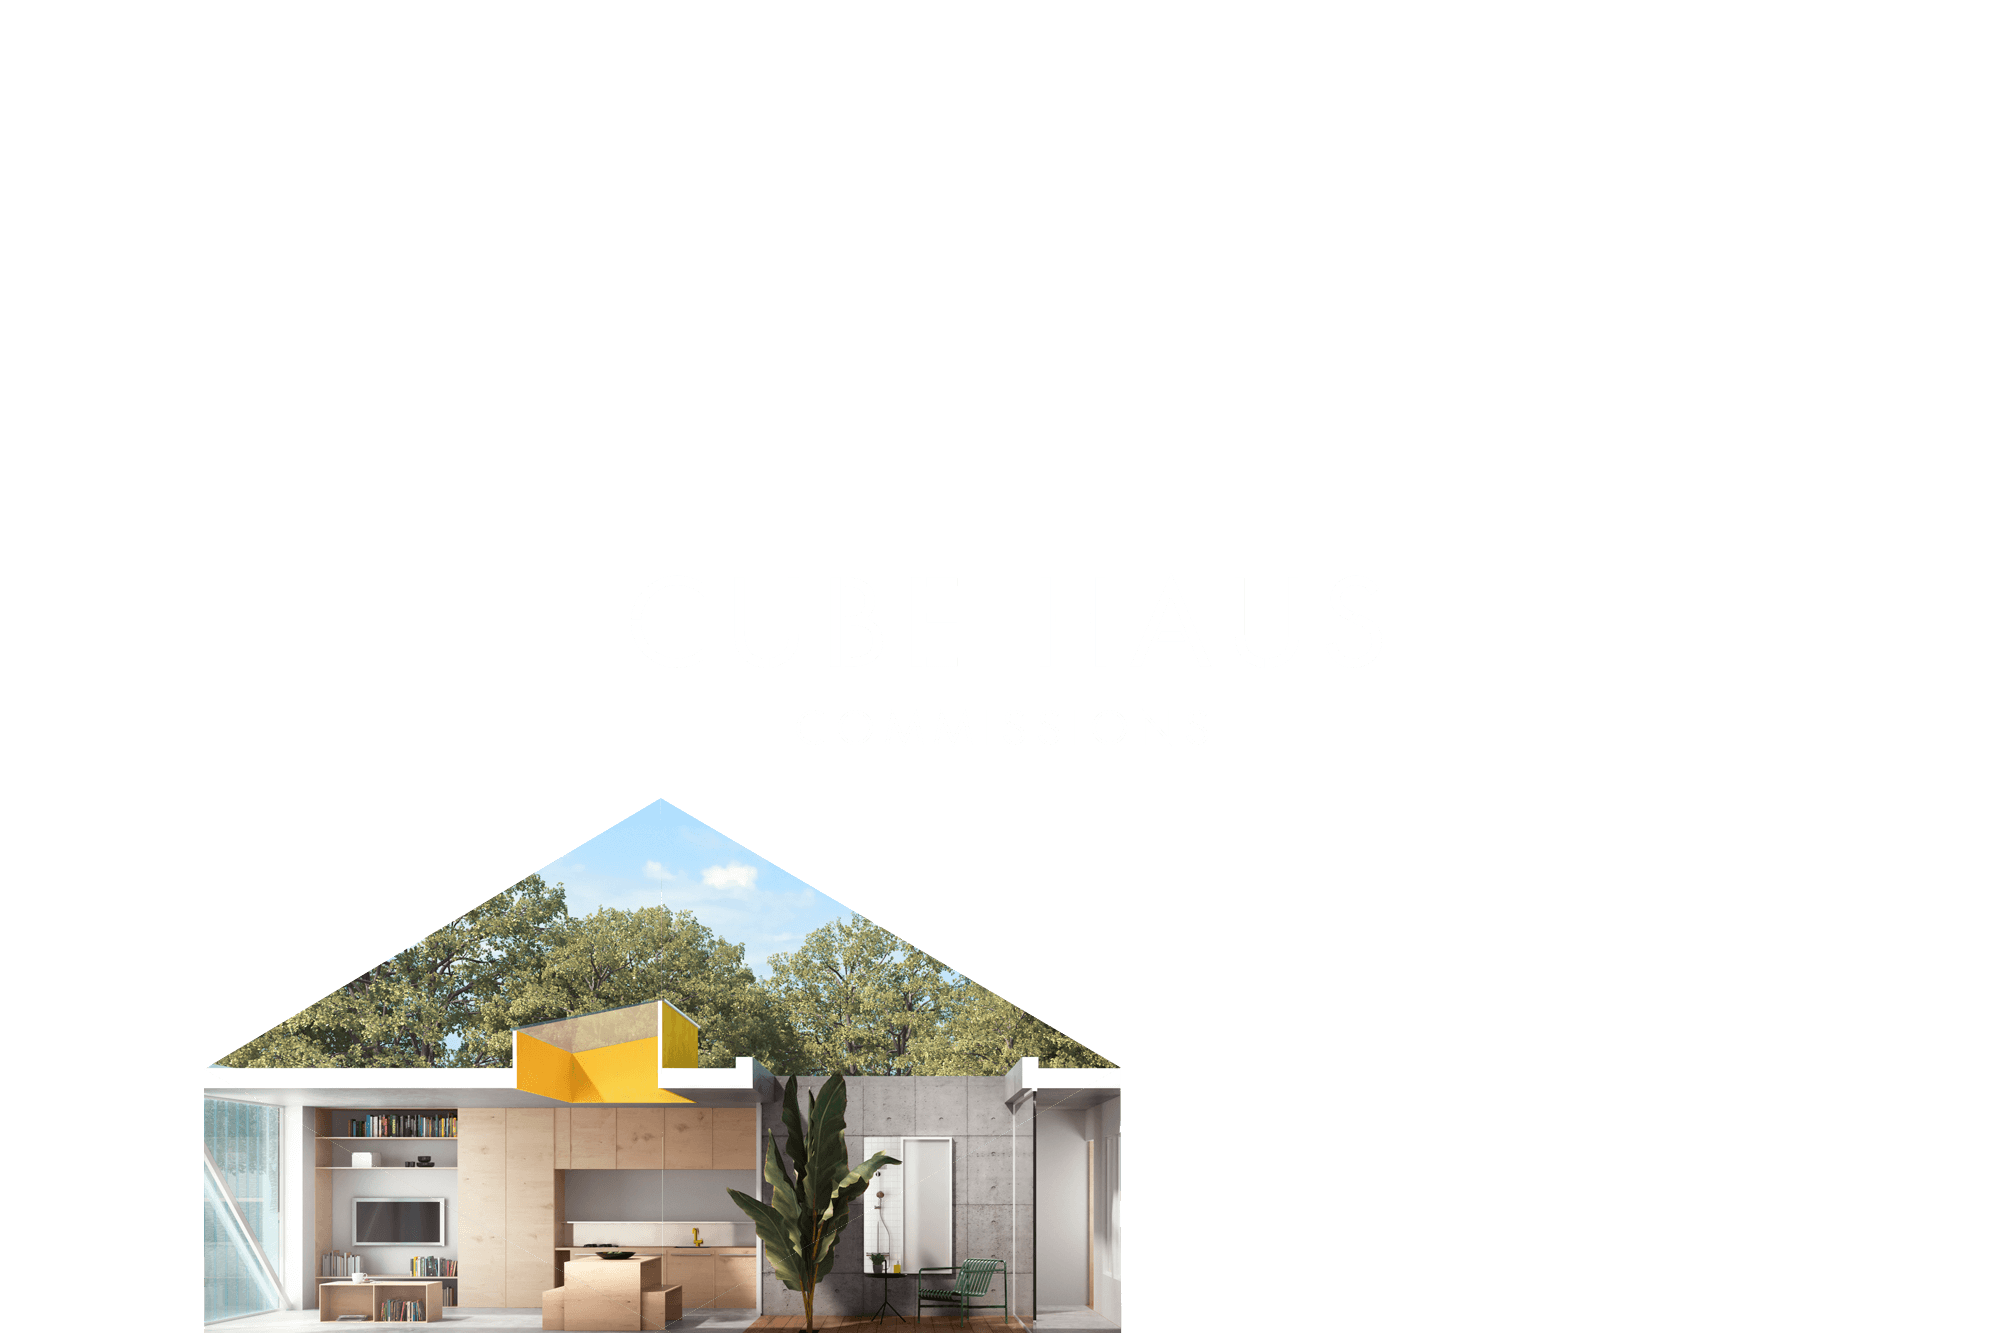 gpj-studio-cube-haus-architects-website-cs-01c